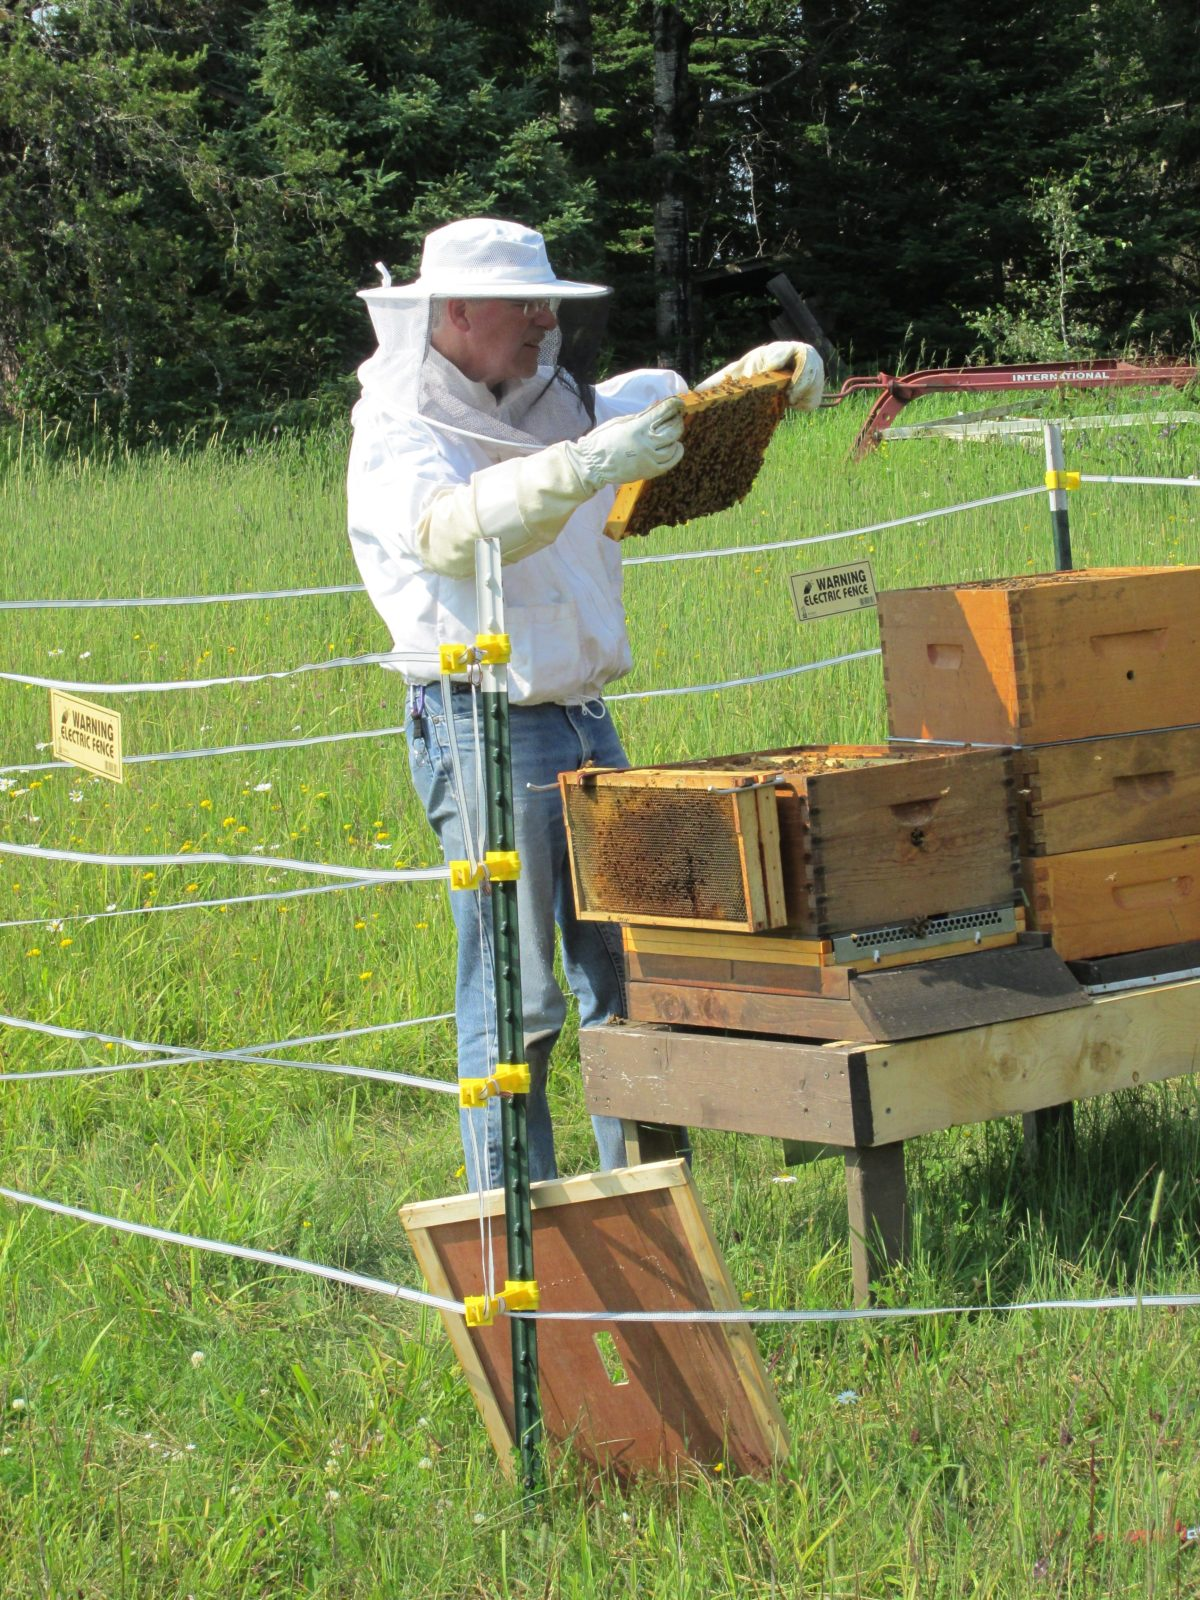 A Langstroth hive has frames that slide in and out where the bees build their honeycombs making it easy for beekeepers to check whether the hive is healthy, whether it's producing honey, and whether the queen bee is laying enough eggs.